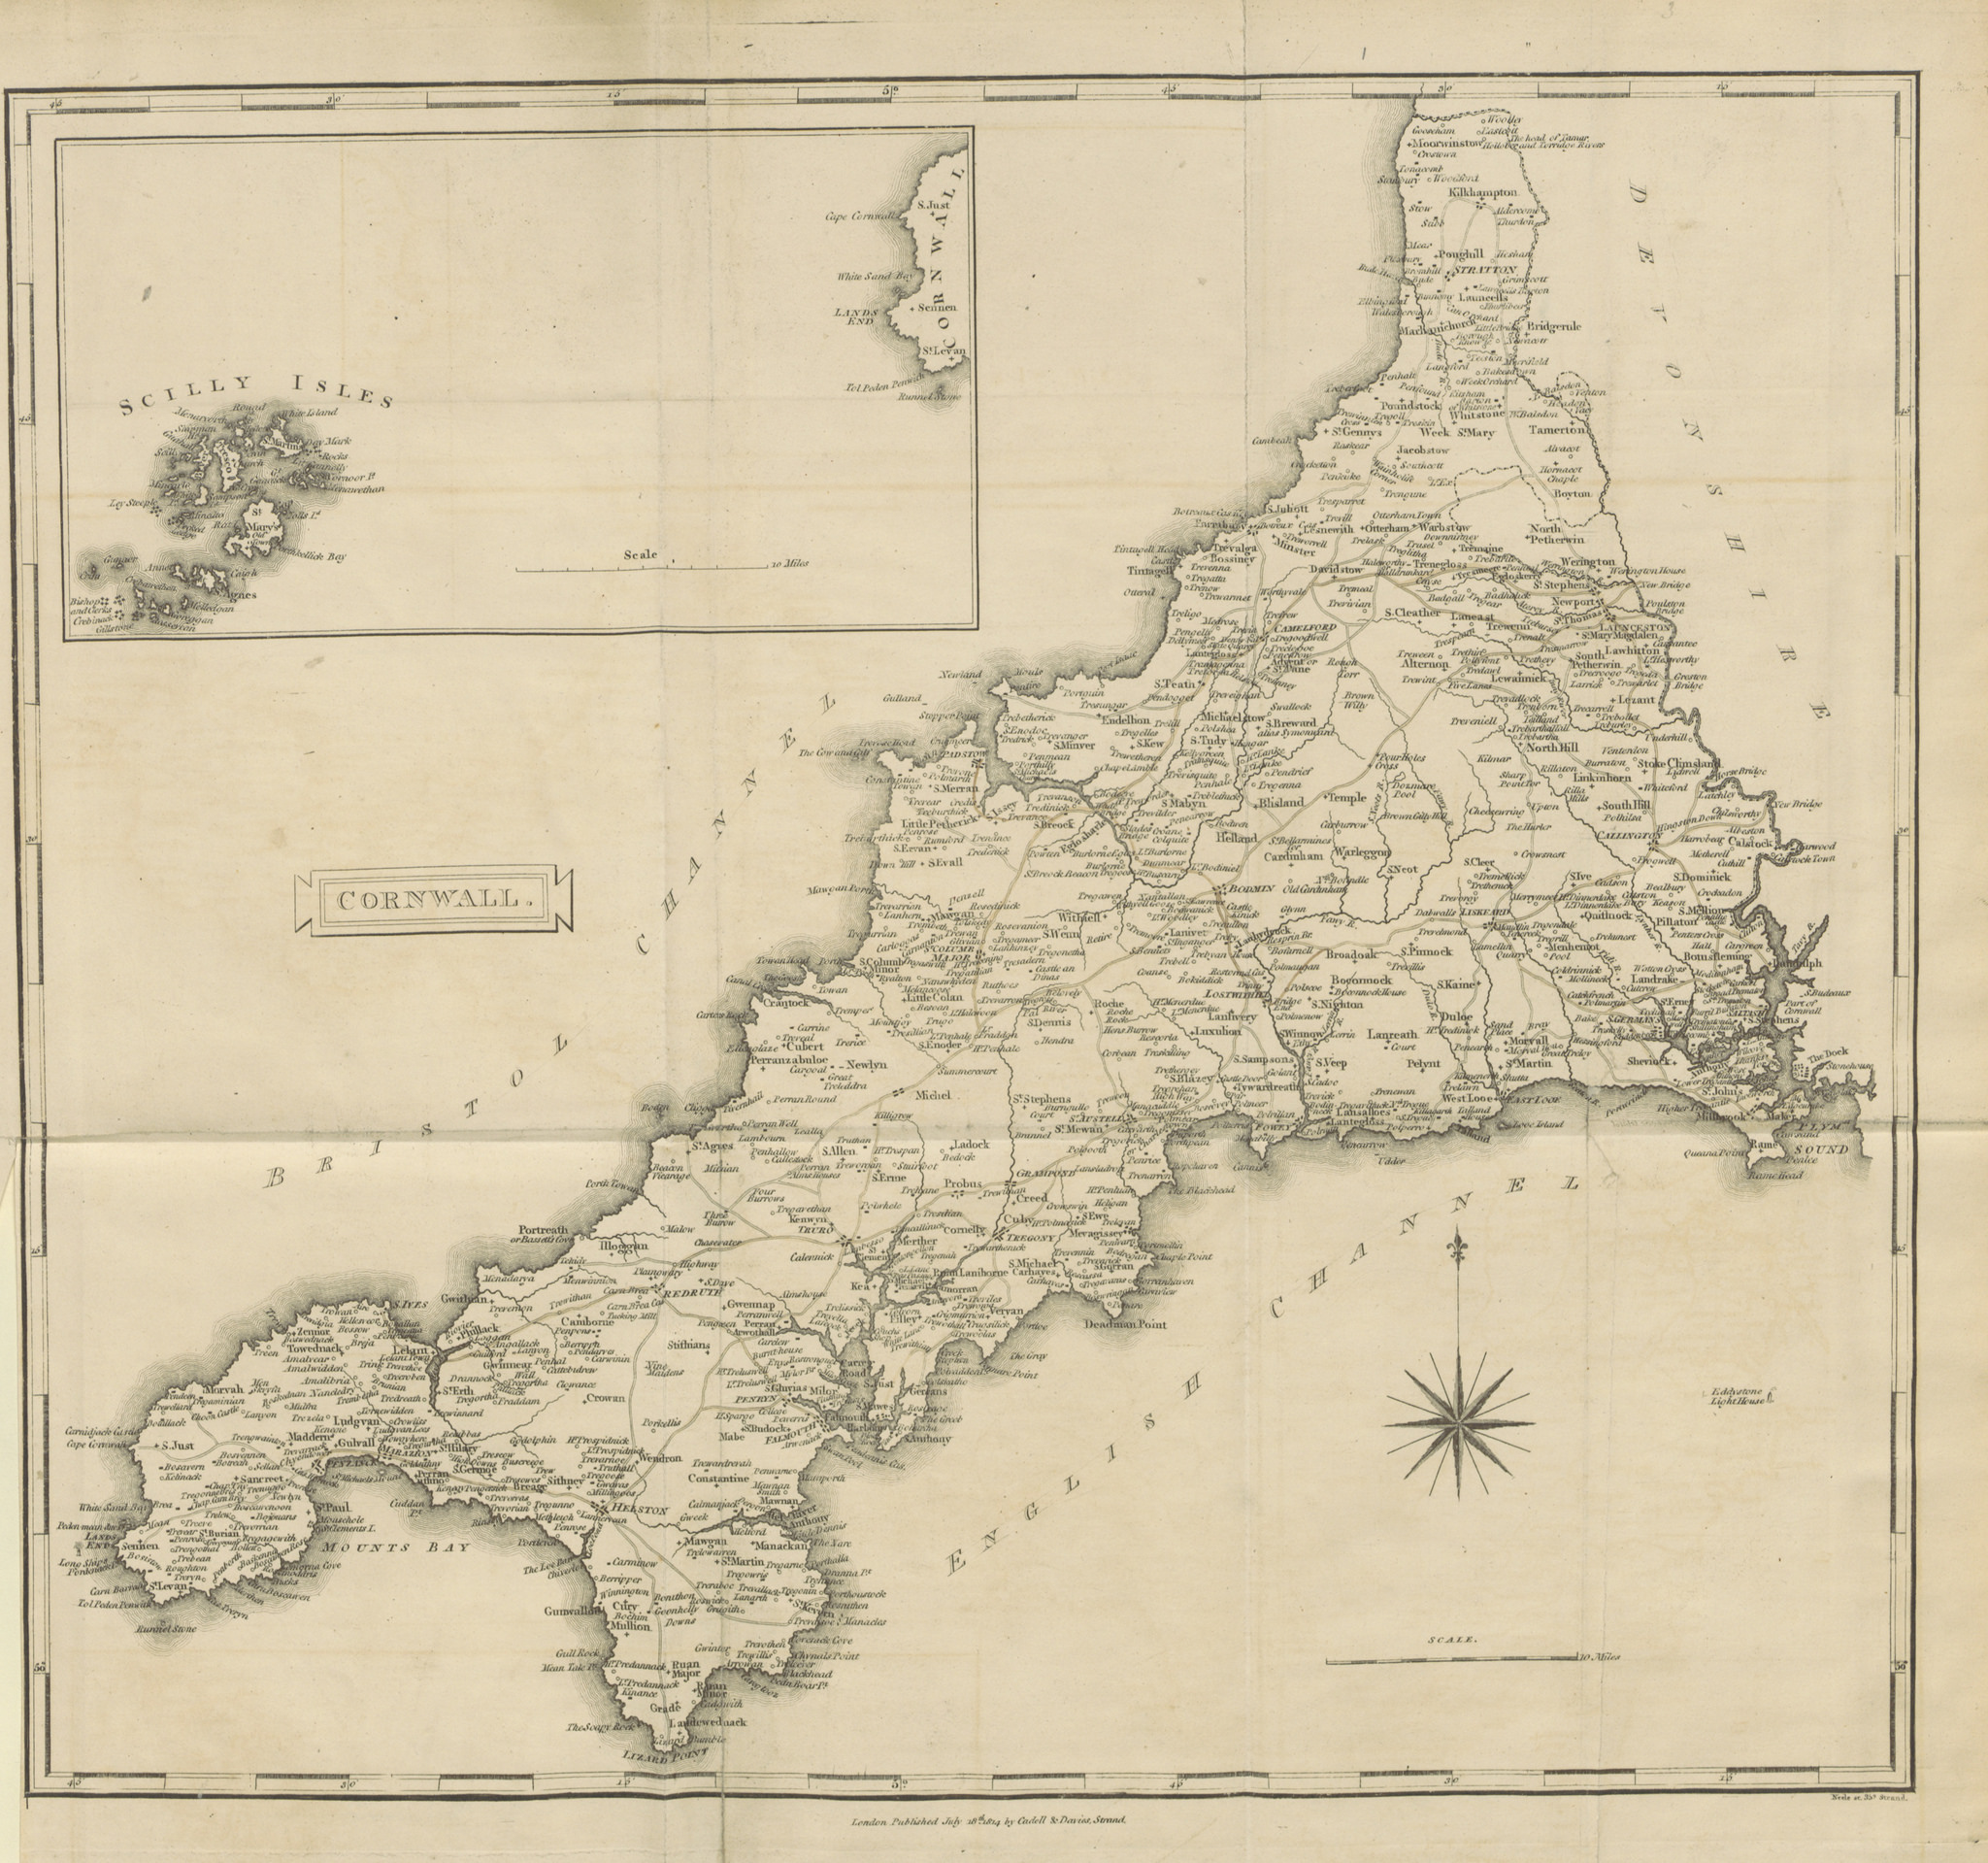 Map of Cornwall in 1814